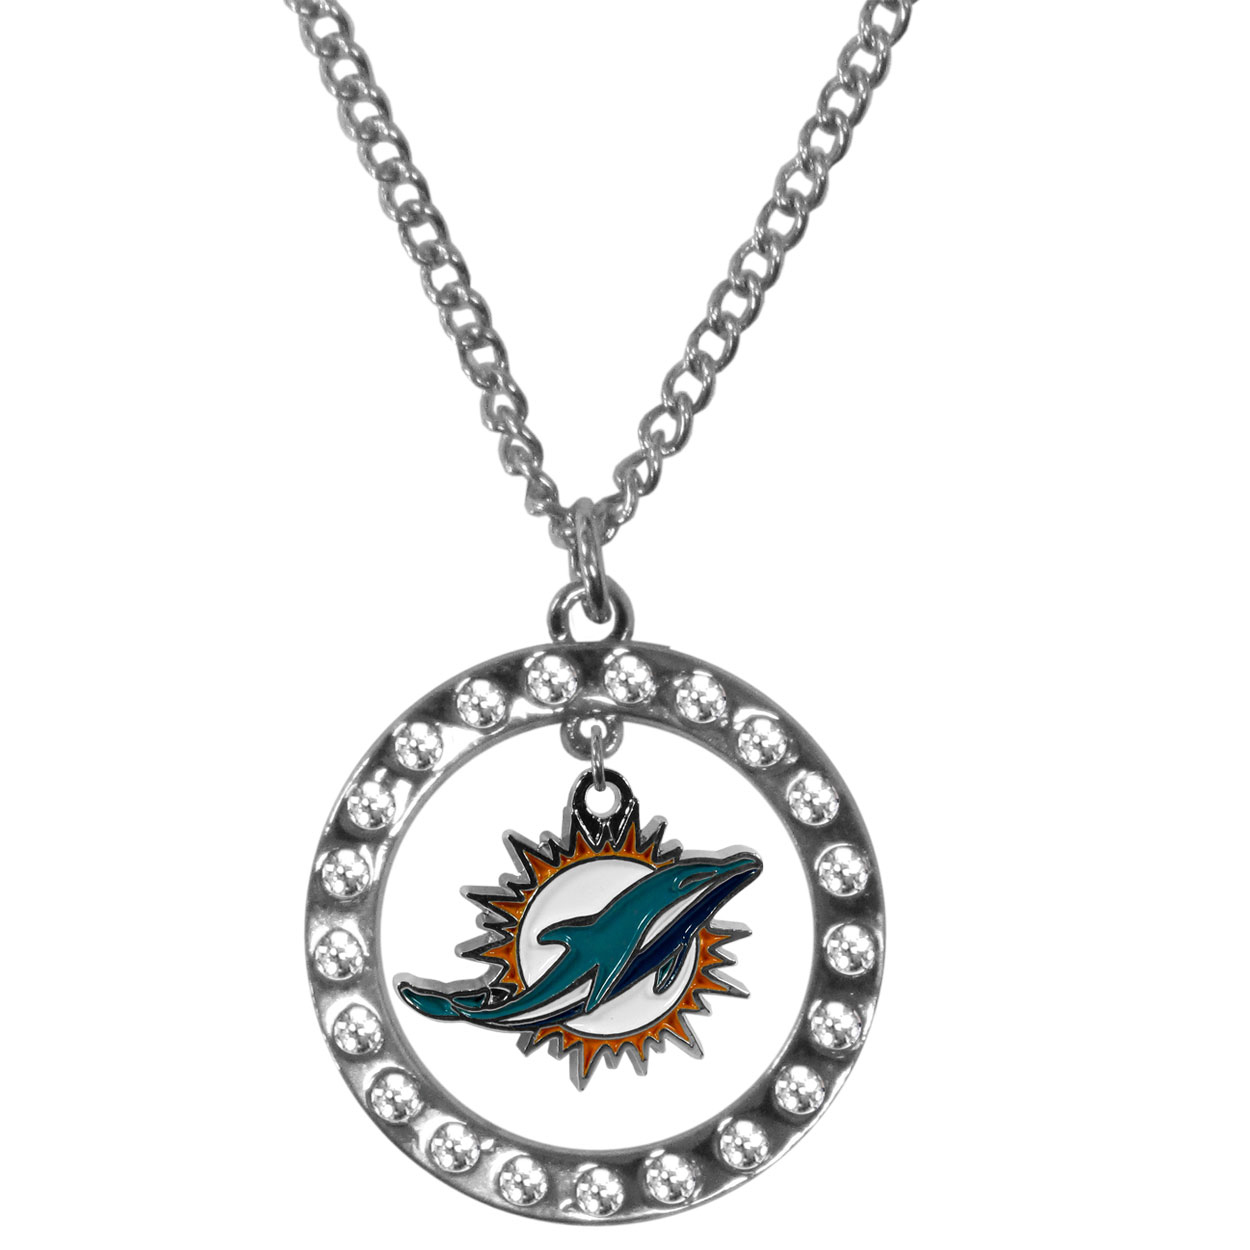 Miami Dolphins Rhinestone Hoop Necklaces - Our Miami Dolphins rhinestone hoop necklace comes on an 18 inch chain and features a hoop covered in rhinestones with a high polish chrome finish and a cast and enameled team charm dangling in the center.